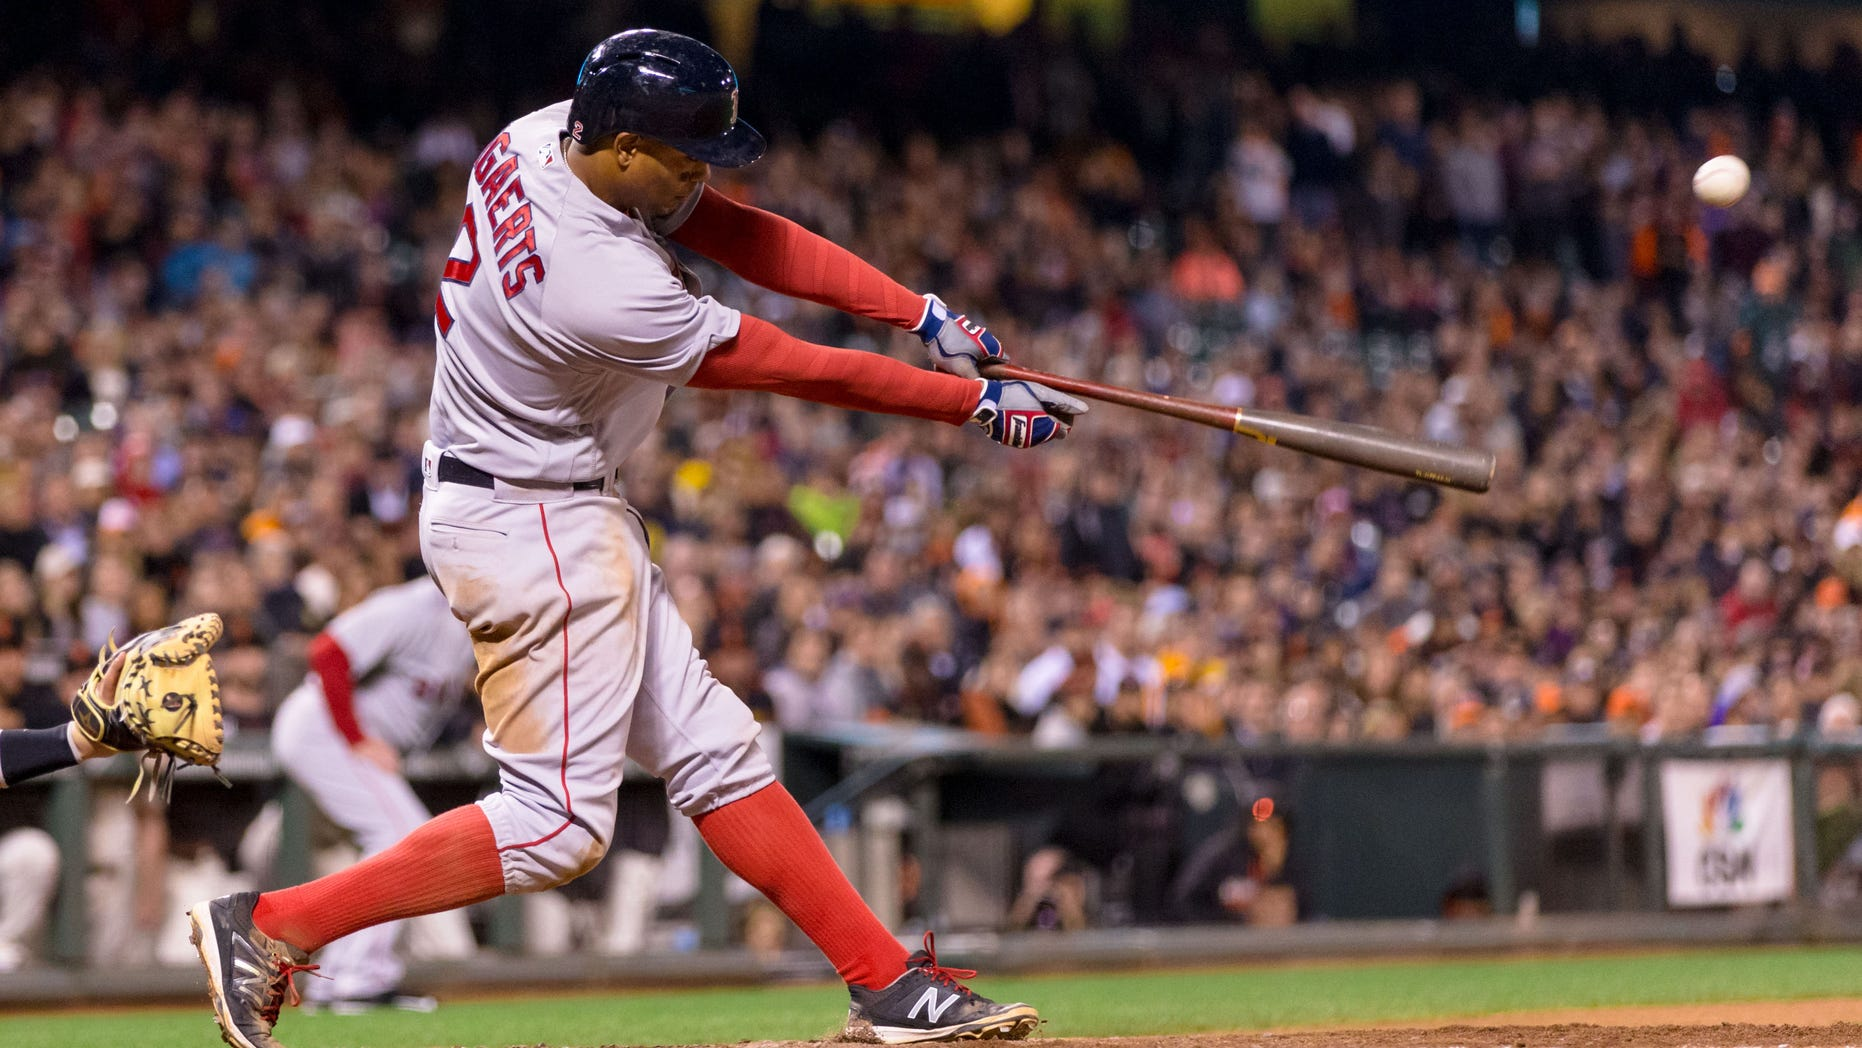 Boston Red Sox shortstop Xander Bogaerts (2) hits a two run single against the San Francisco Giants in the tenth inning at AT&T Park on Jun 7, 2016.